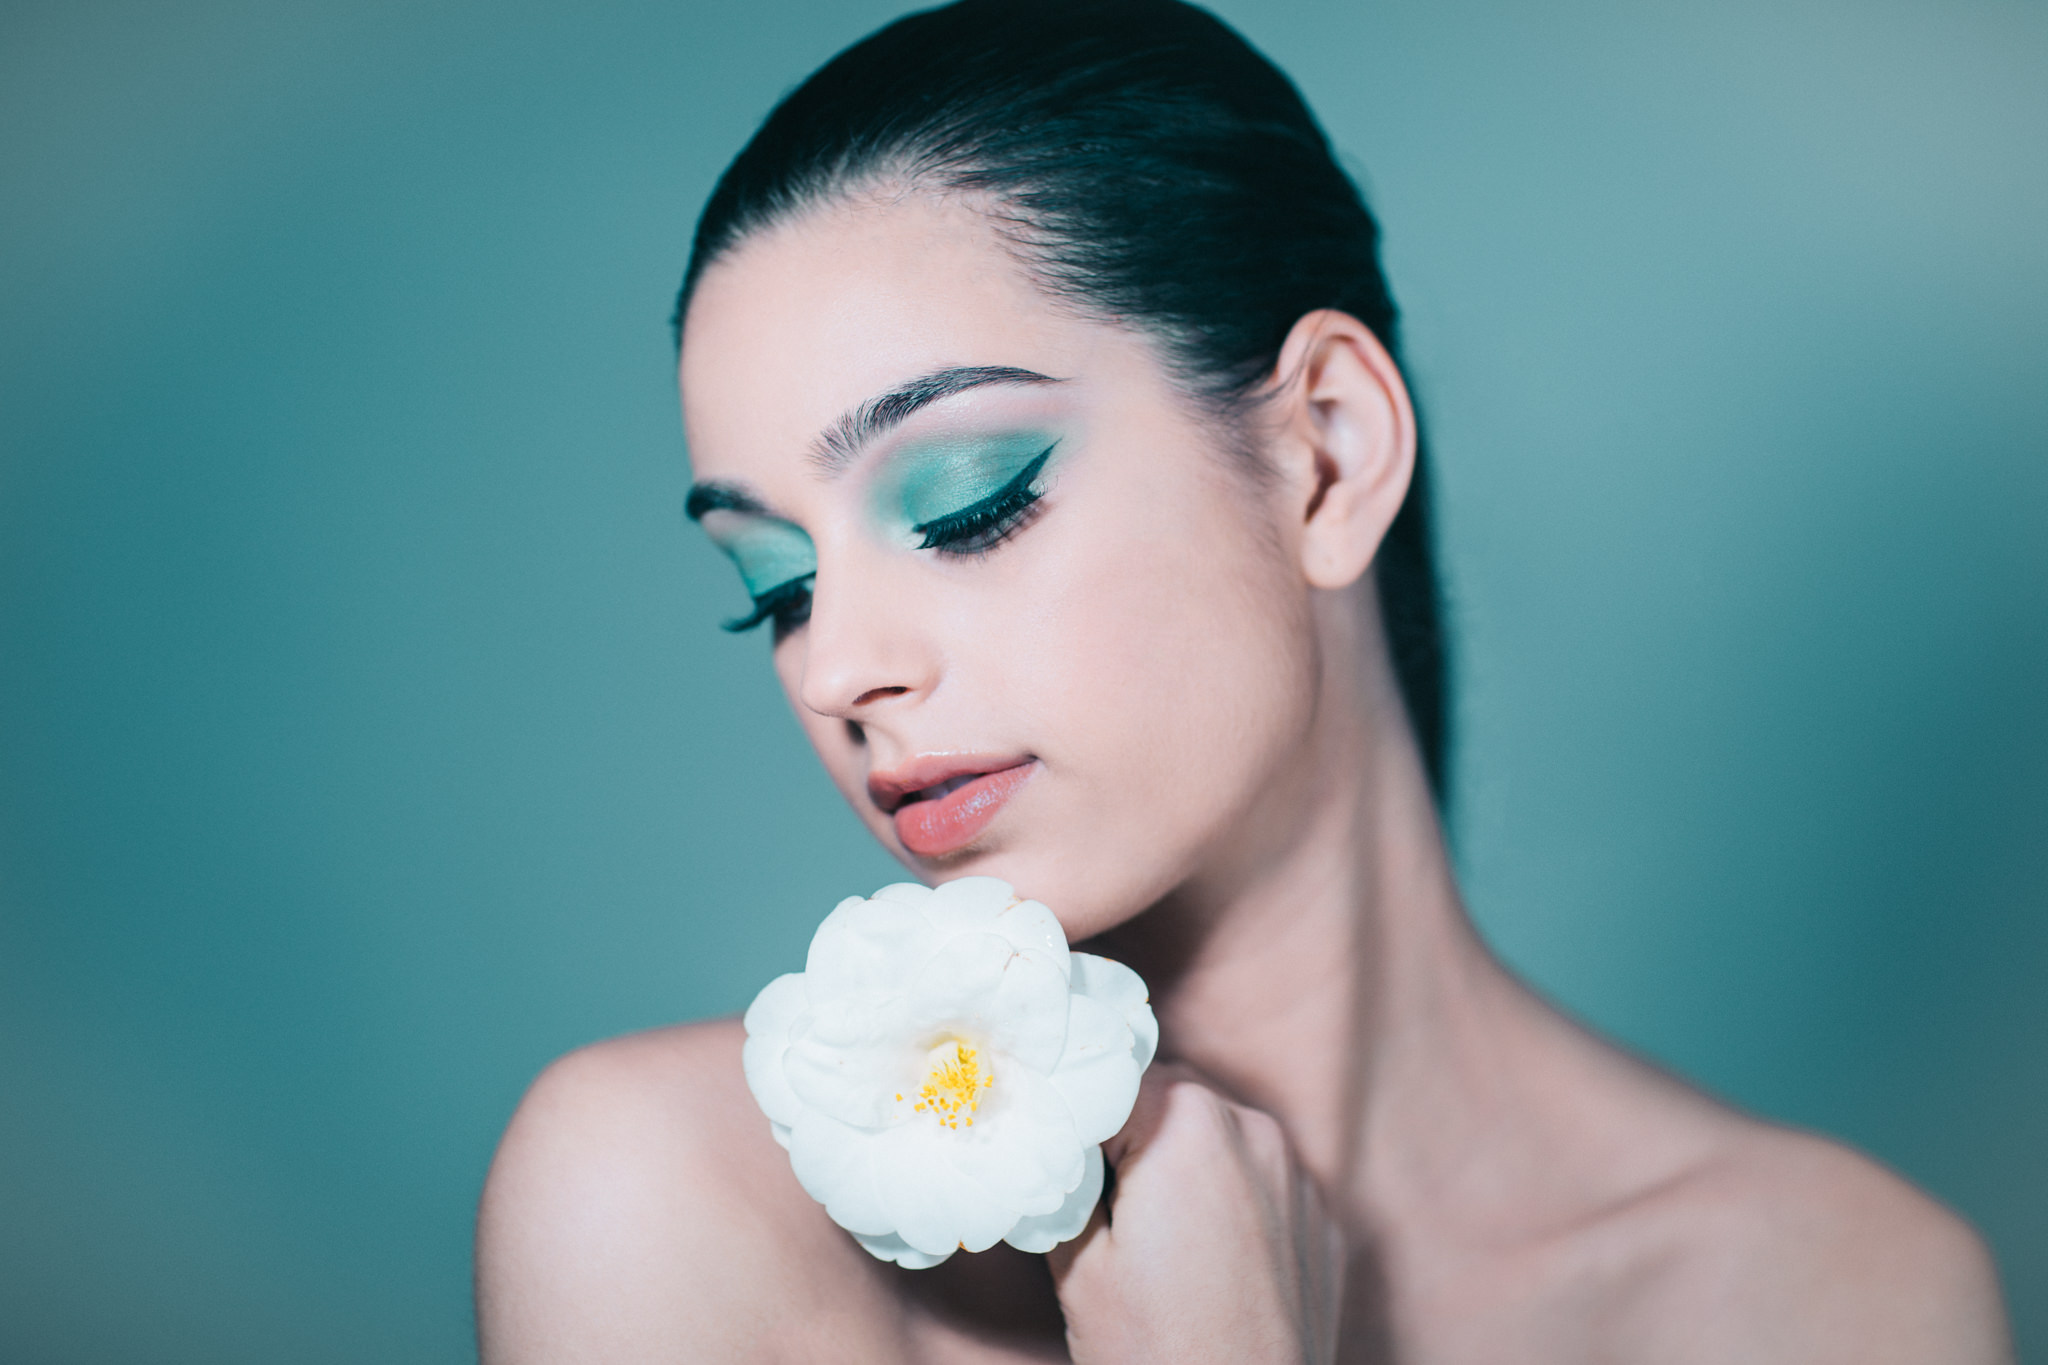 beauty photography in melbourne - makeup and beauty products